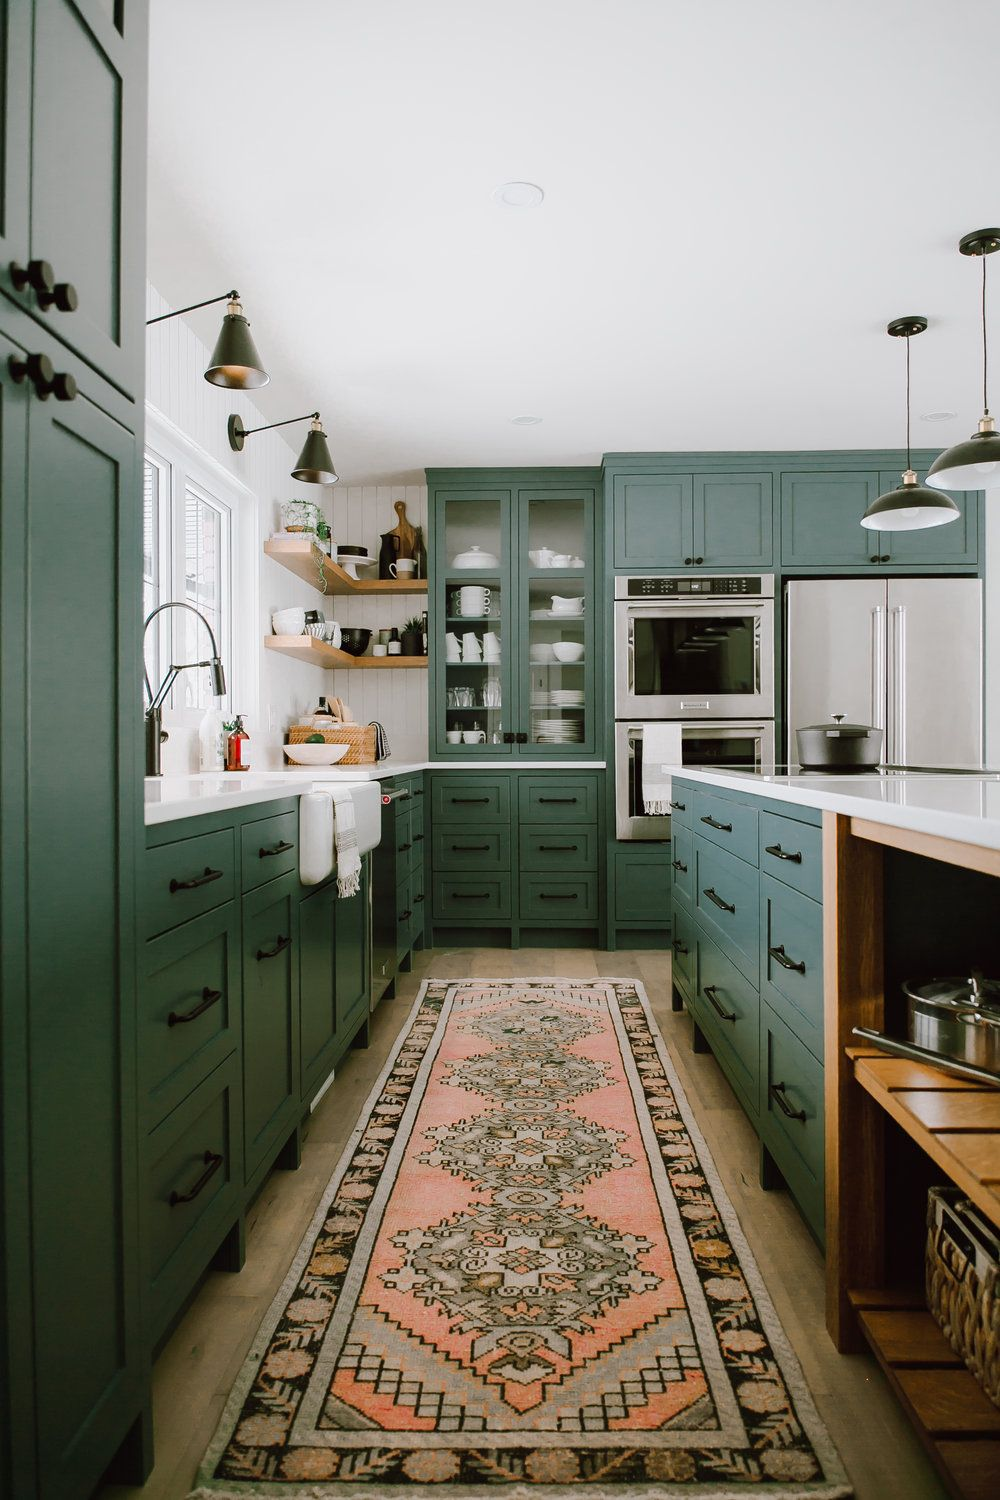 7 Envy-Inducing Green Cabinets That Will Make Your Houseguests